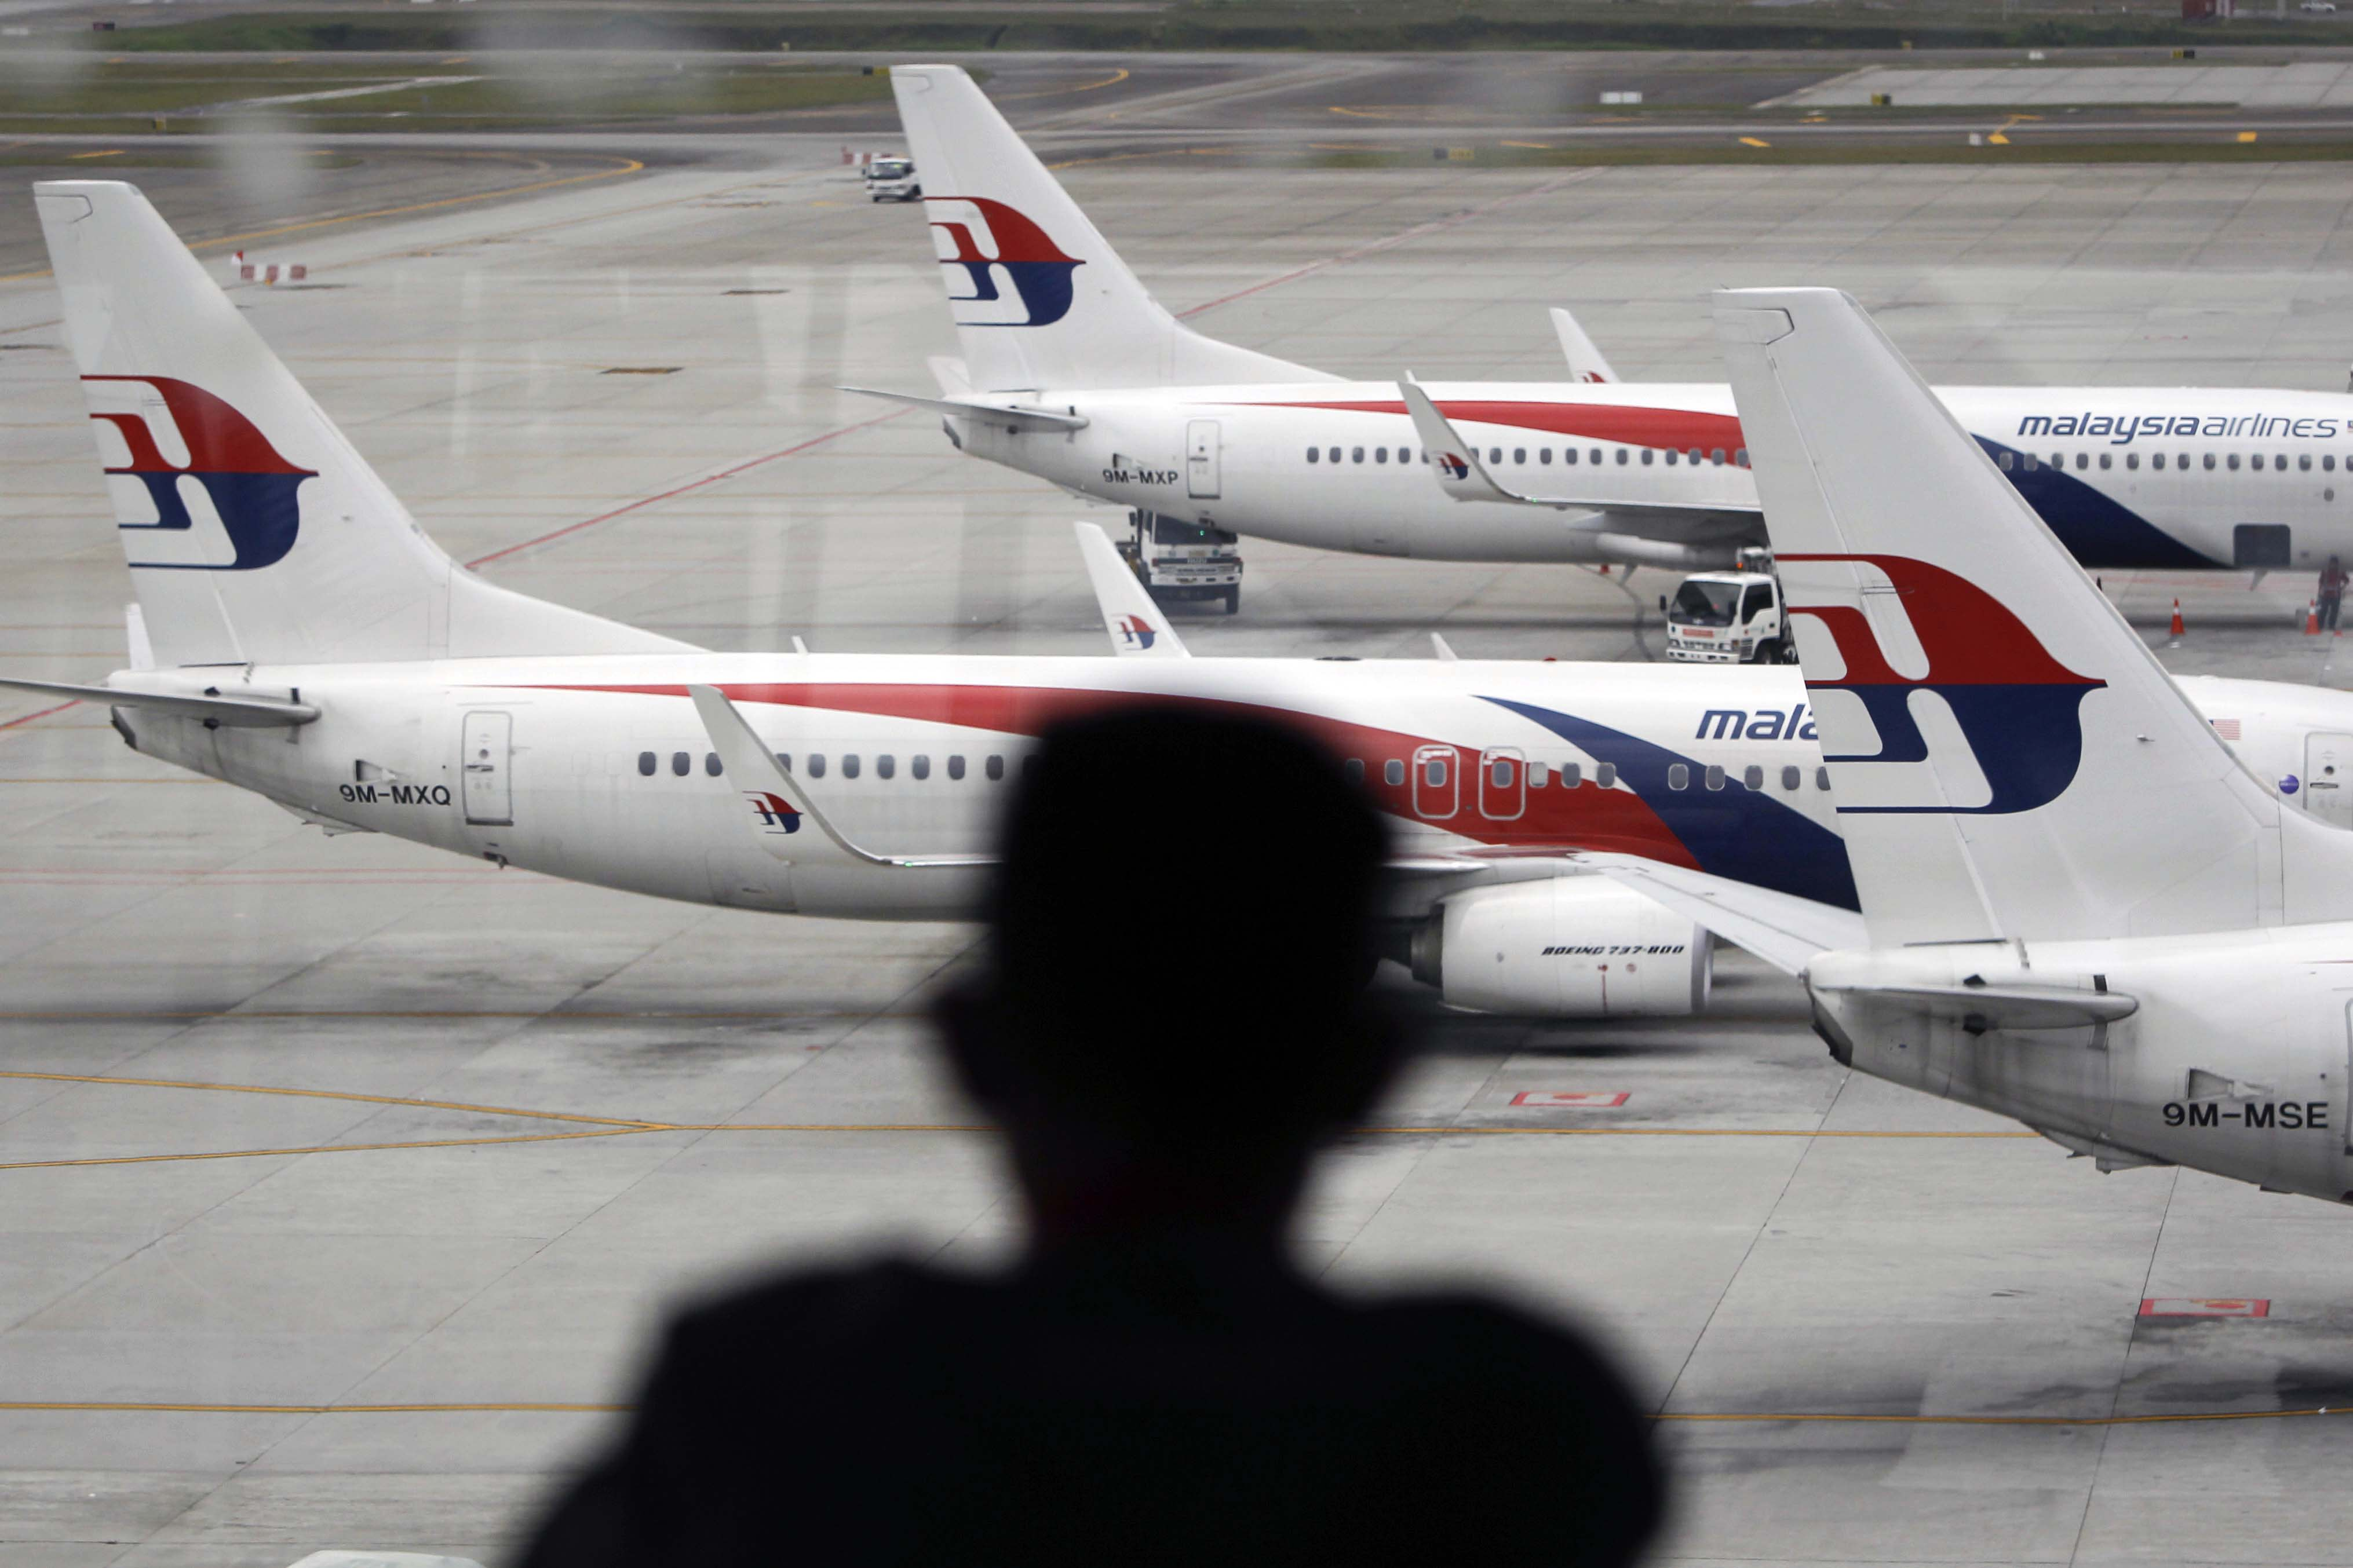 Malaysia says MH370 crash an accident to clear compensation